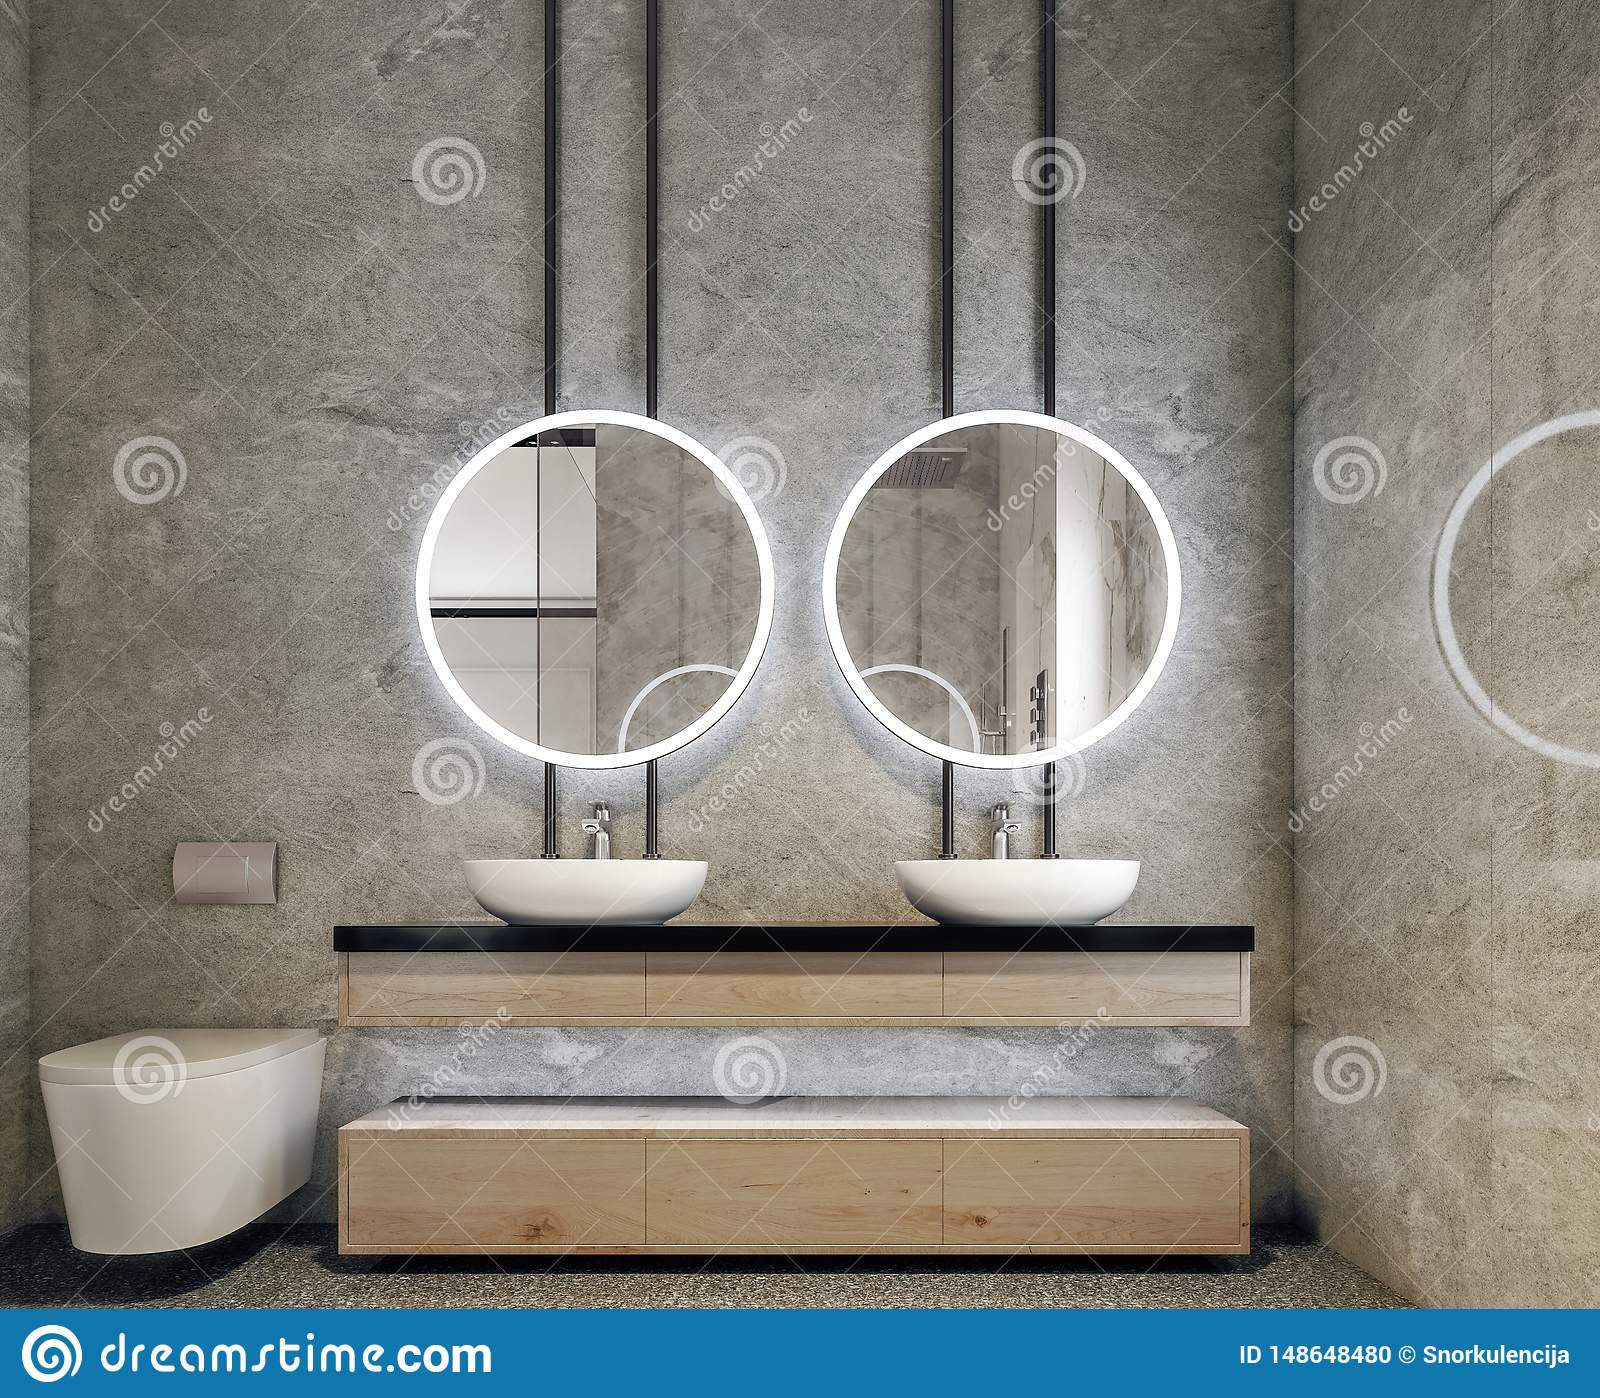 Modern interior design of bathroom vanity, all walls made of stone slabs with circle mirrors, minimalistic and clean concept